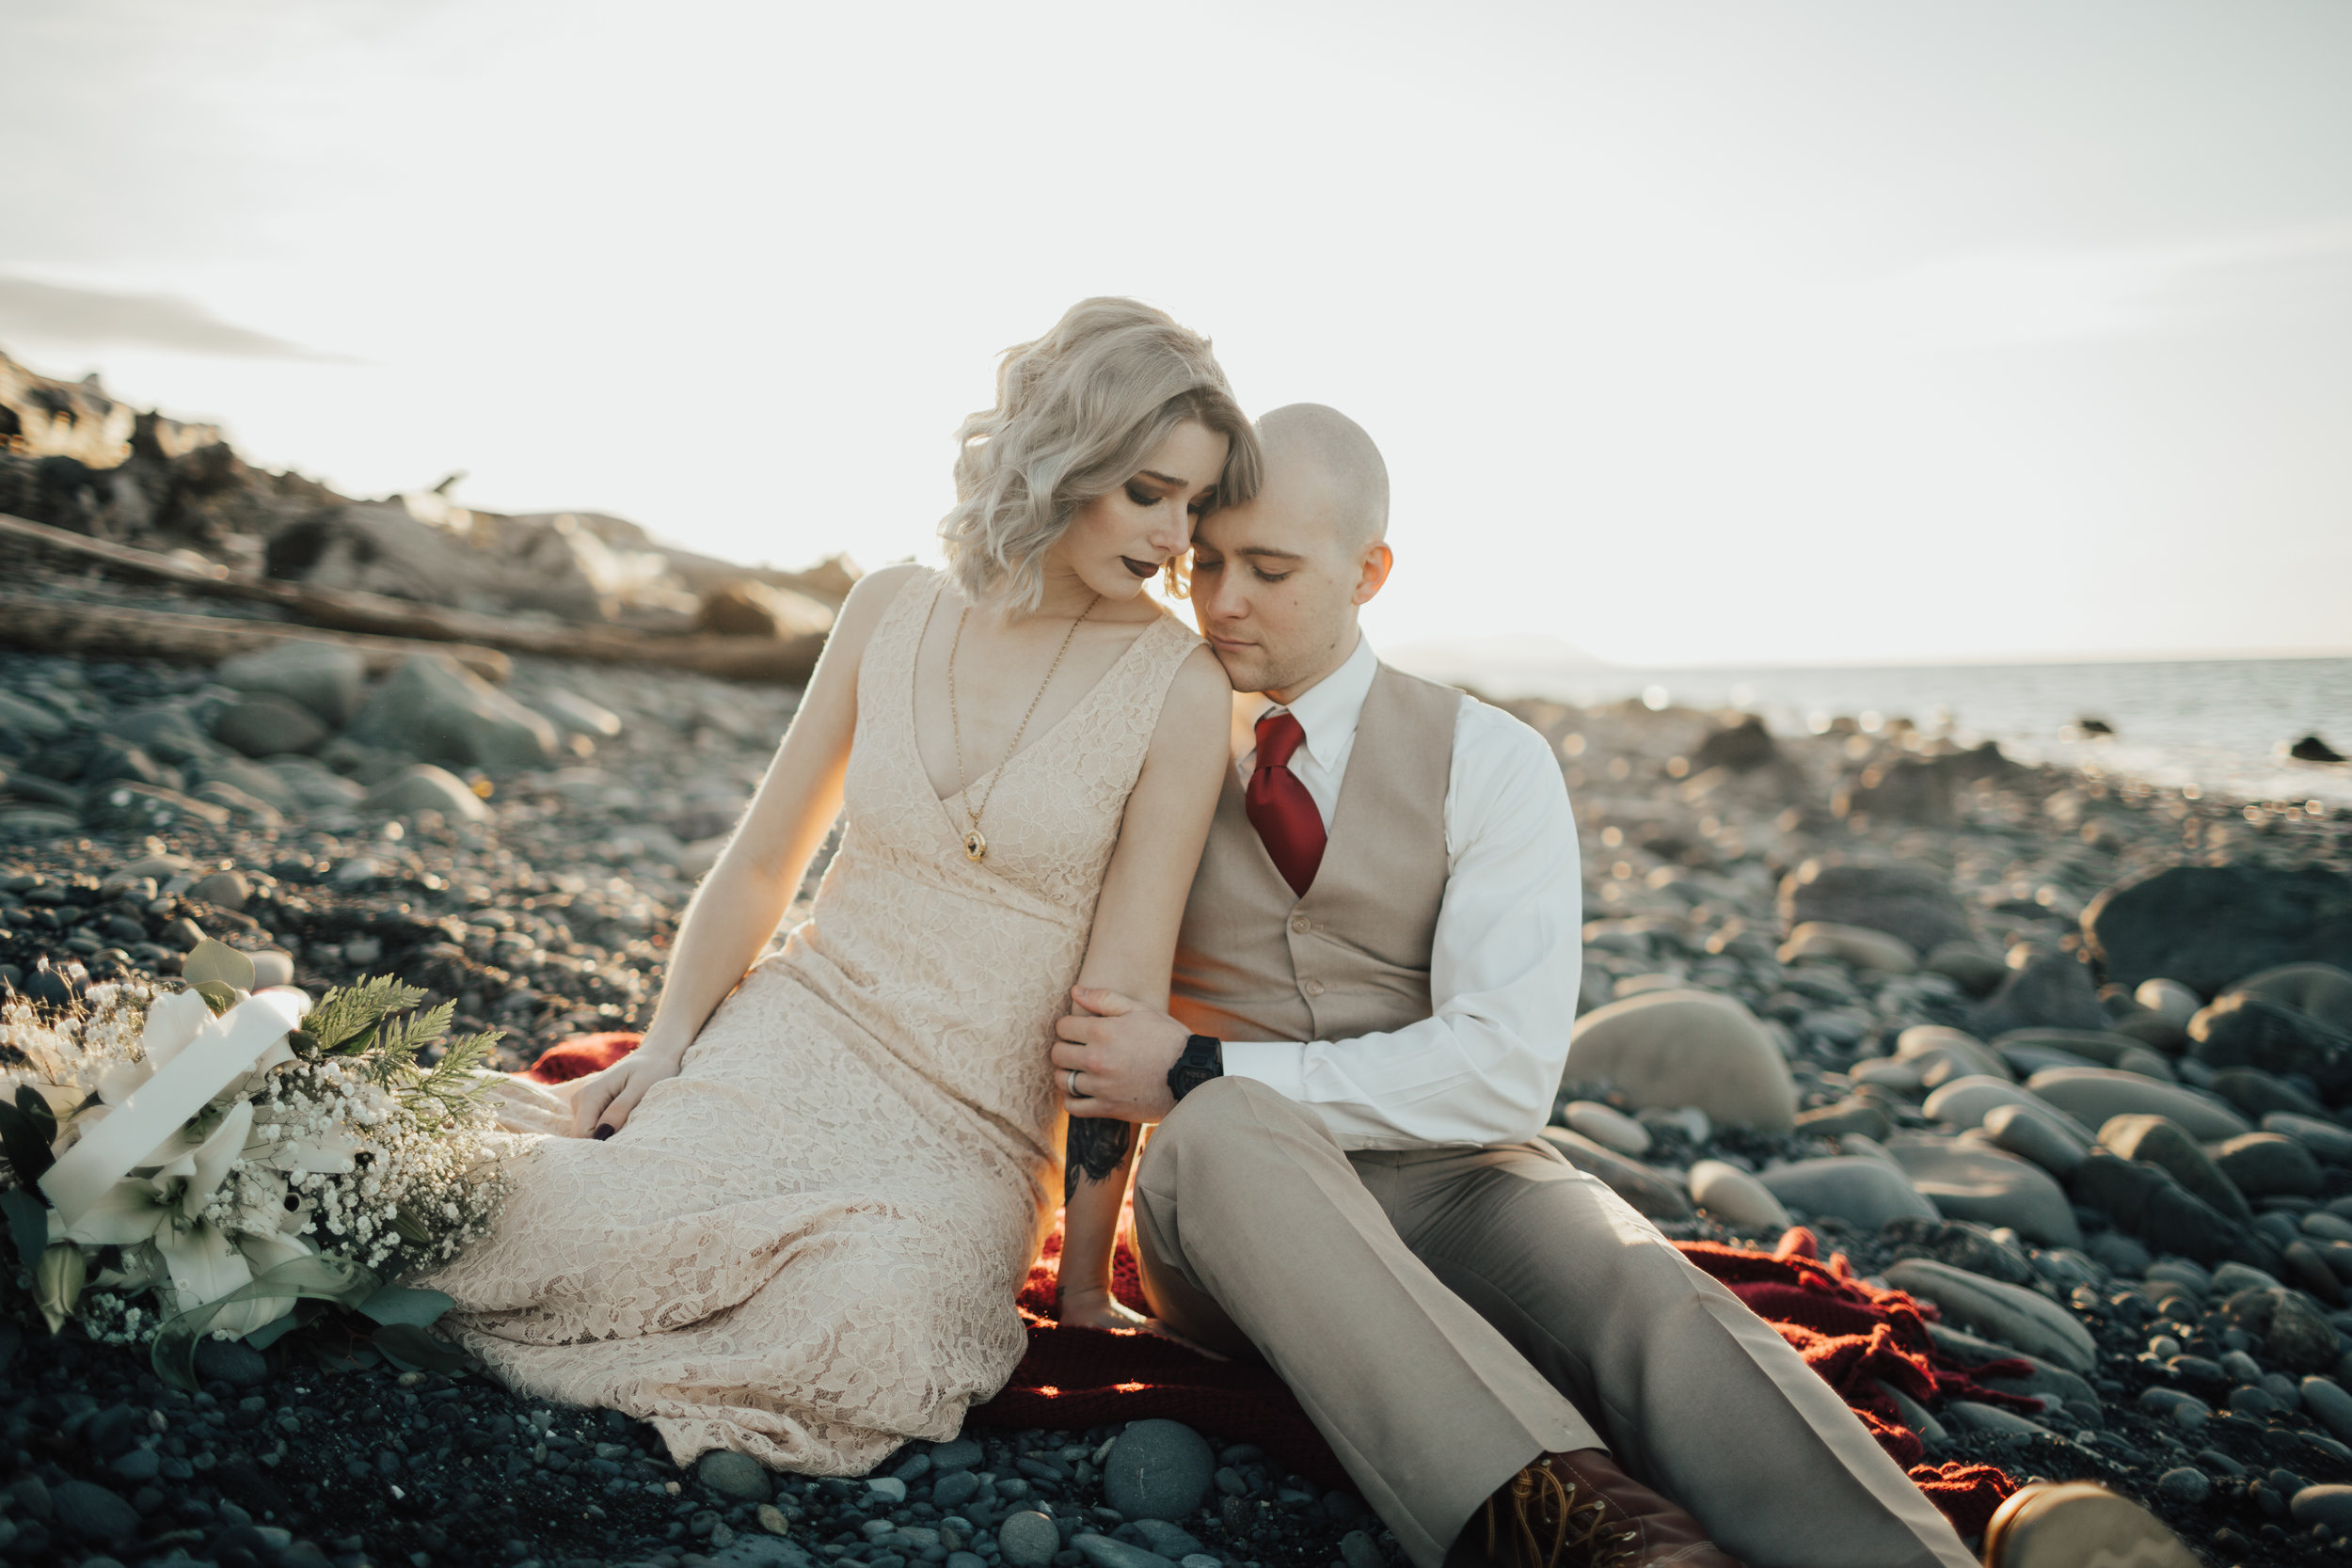 Port Angeles-PNW-Sequim-Portrait-wedding-elopement-photographer-kayladawnphoto-kayla dawn photography-olympic peninsula-portraiture100.jpg